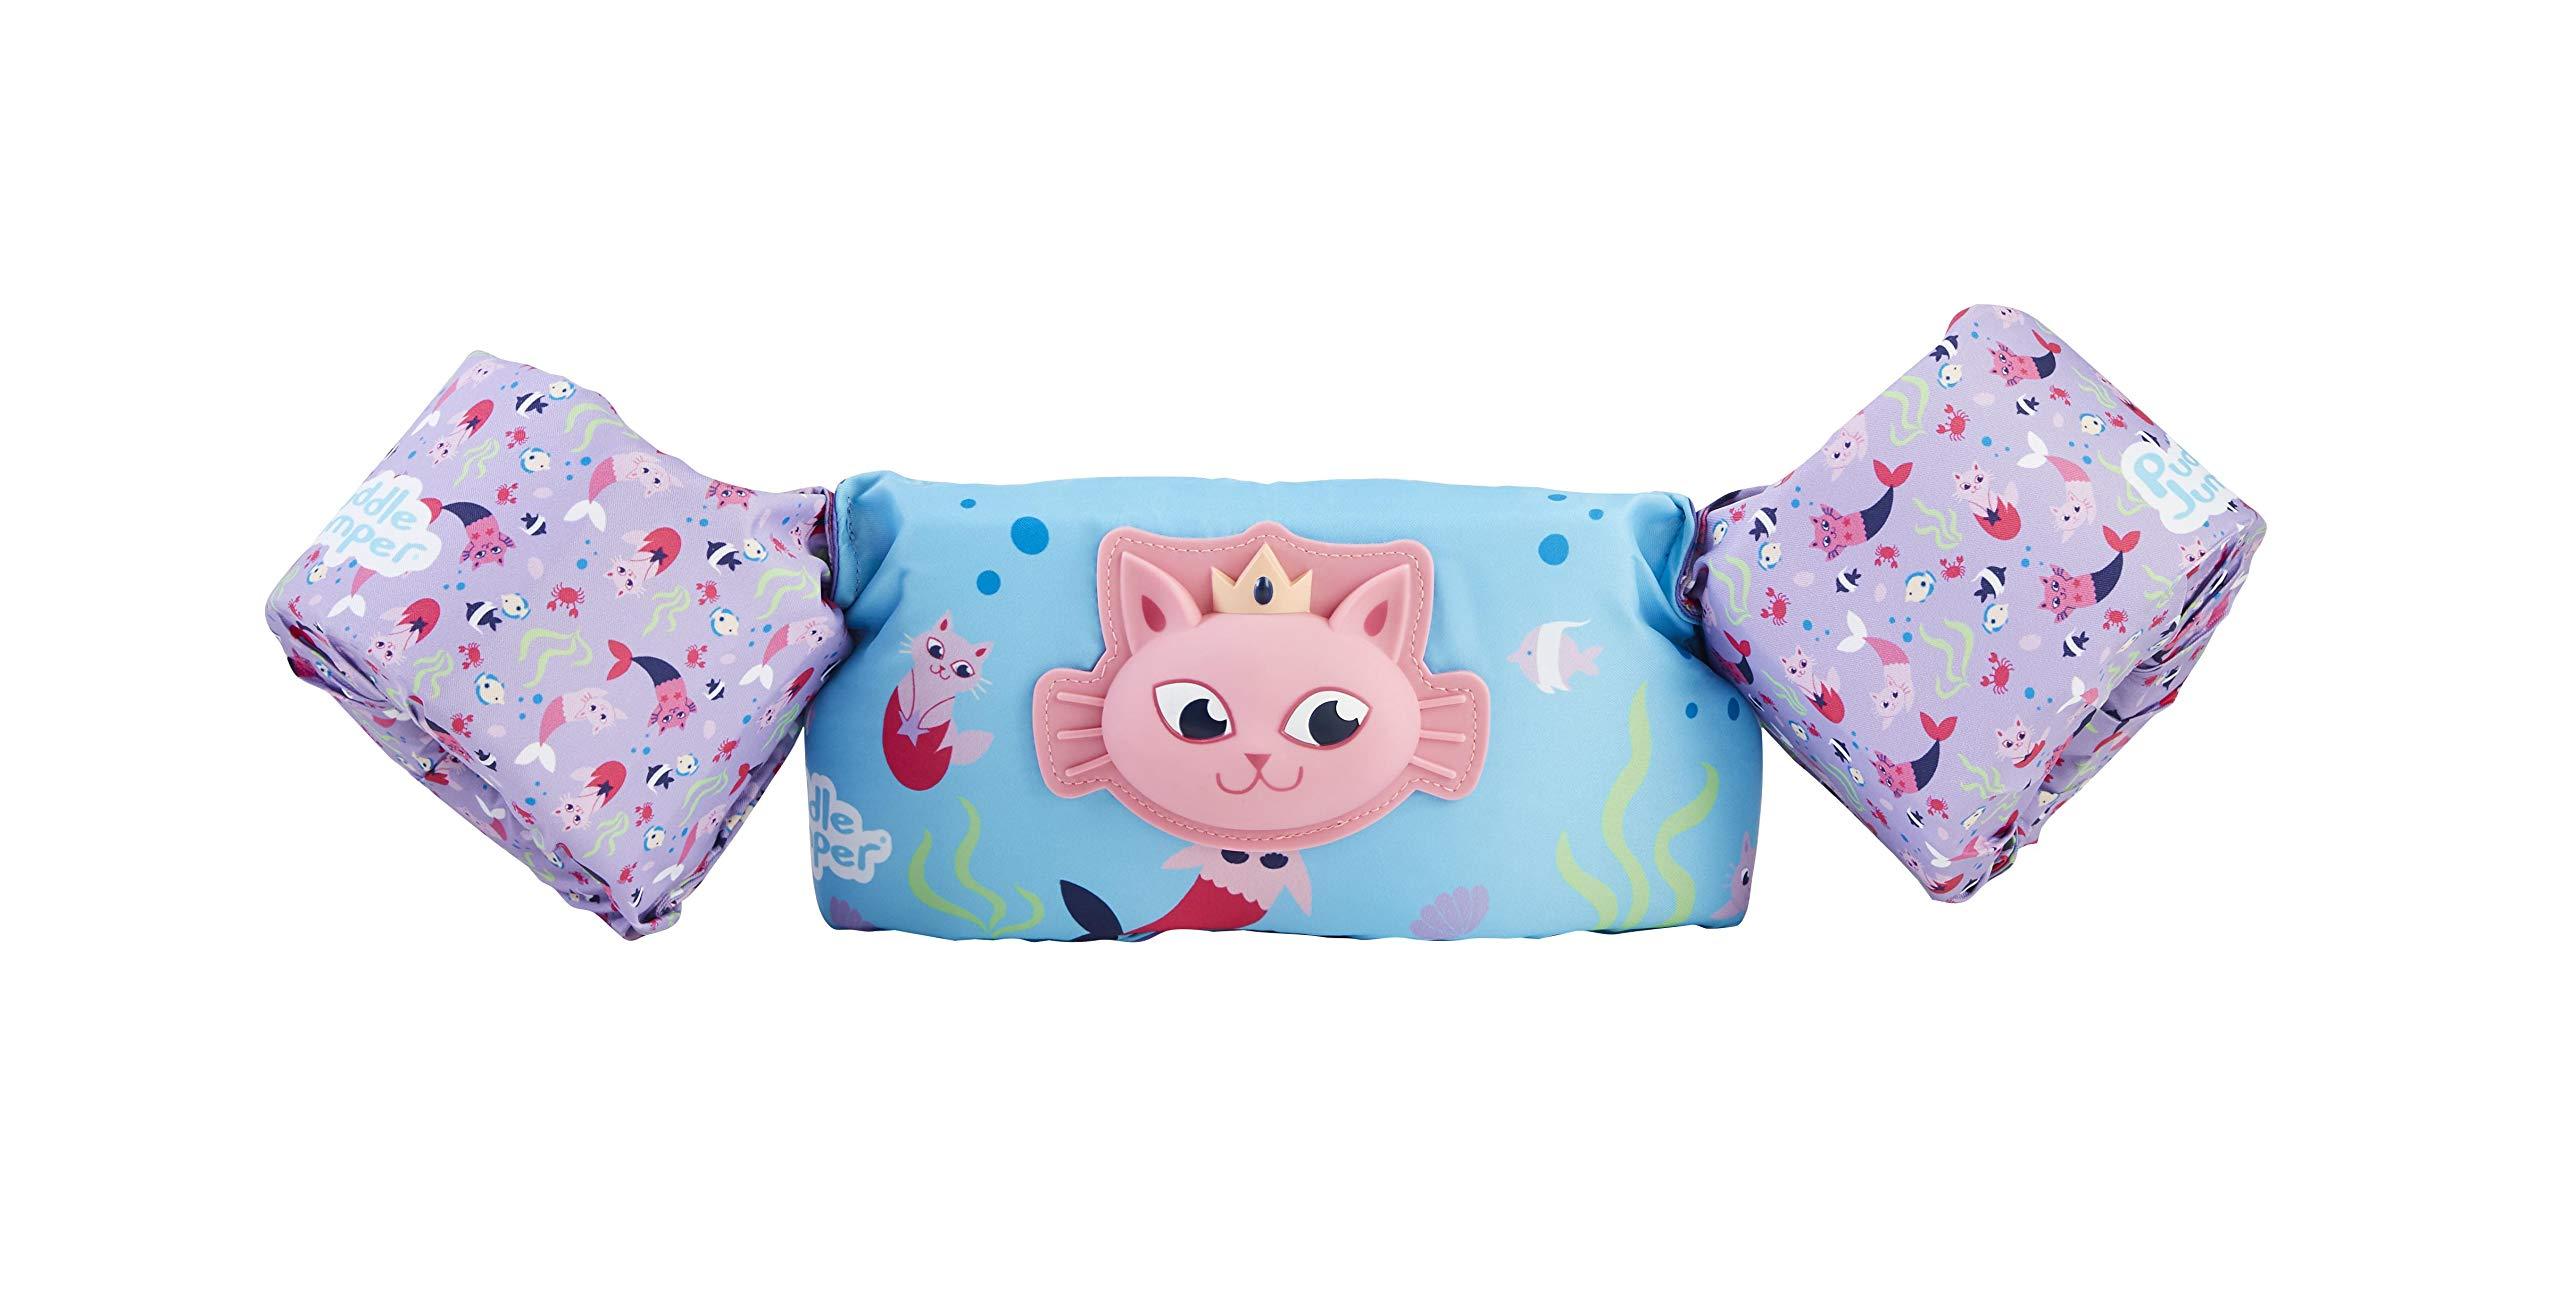 Stearns Puddle Jumper Kids Deluxe 3D Life Jacket | Premium Life Vest for Children with 3D Character, Cat Mermaid, 30-50 Pounds by Stearns